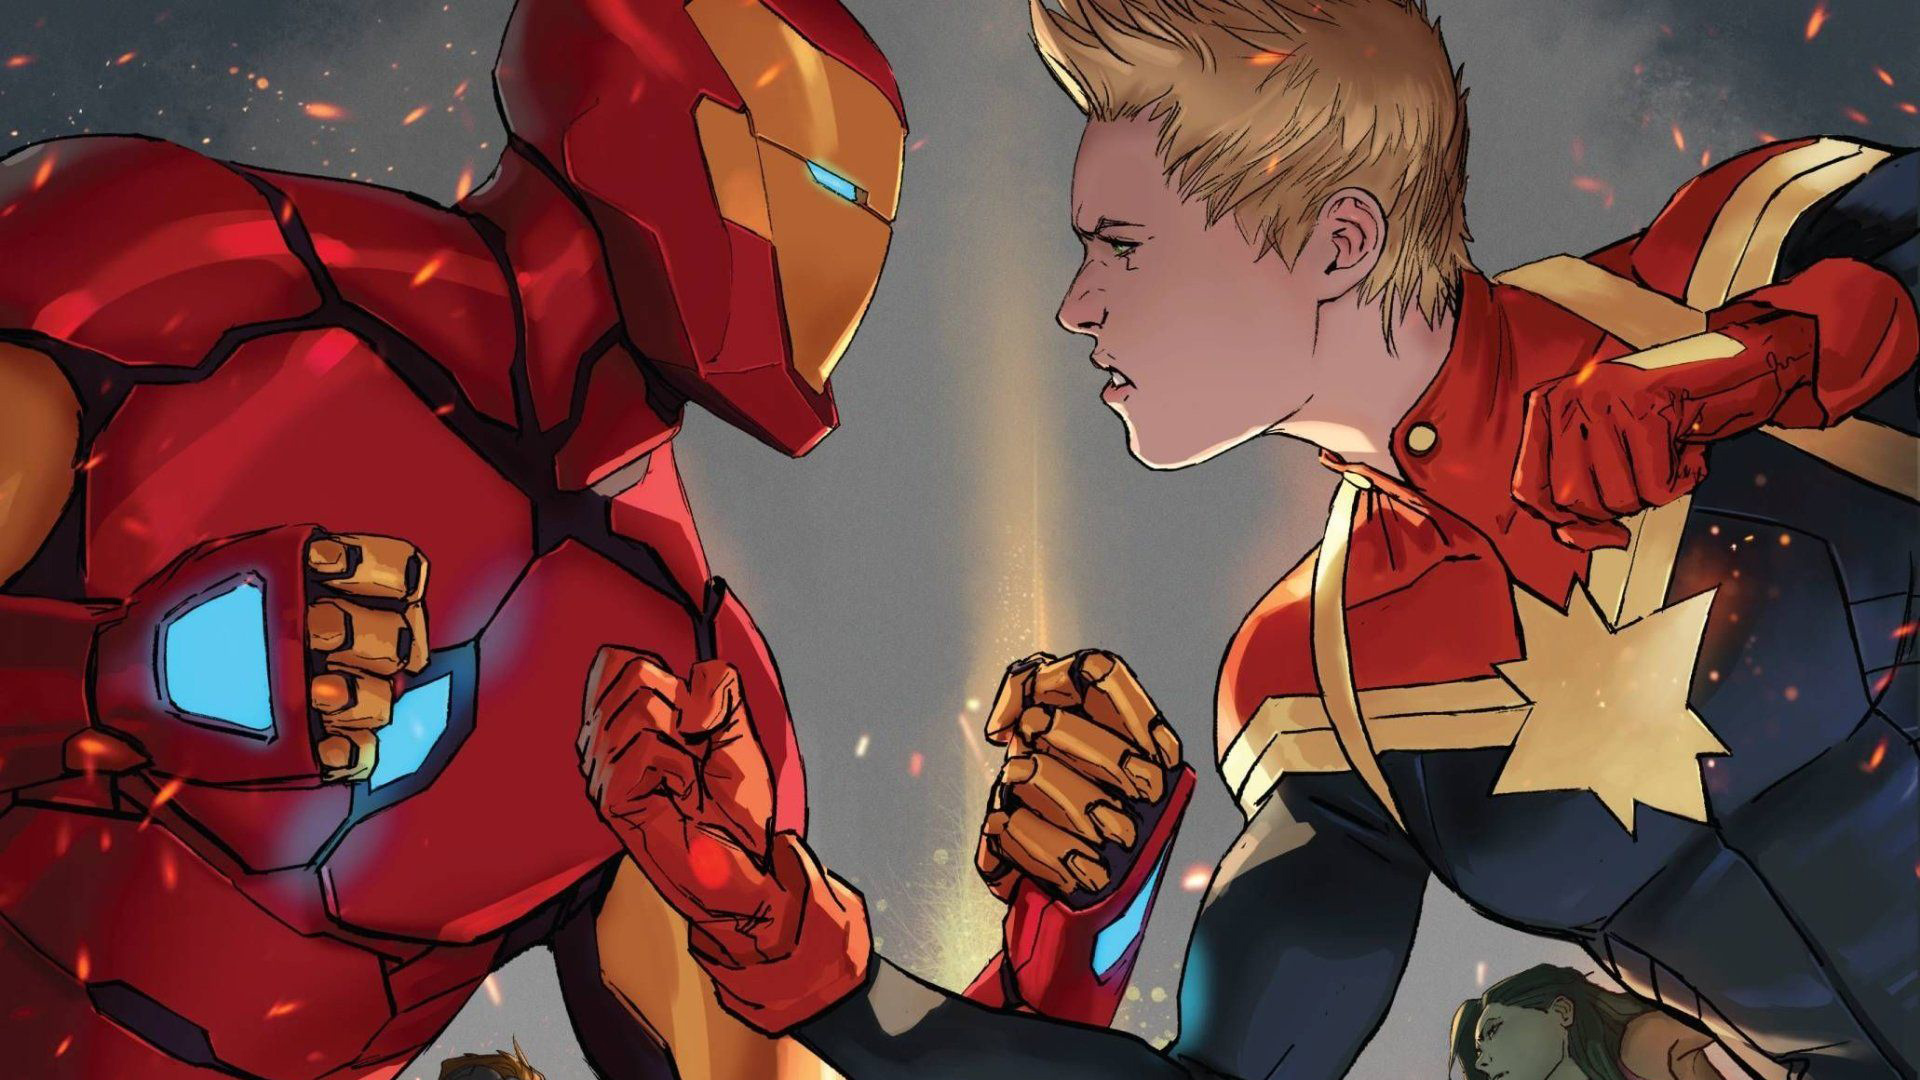 iron man and captain marvel 1544829588 - Iron Man And Captain Marvel - superheroes wallpapers, iron man wallpapers, hd-wallpapers, digital art wallpapers, captain marvel wallpapers, artwork wallpapers